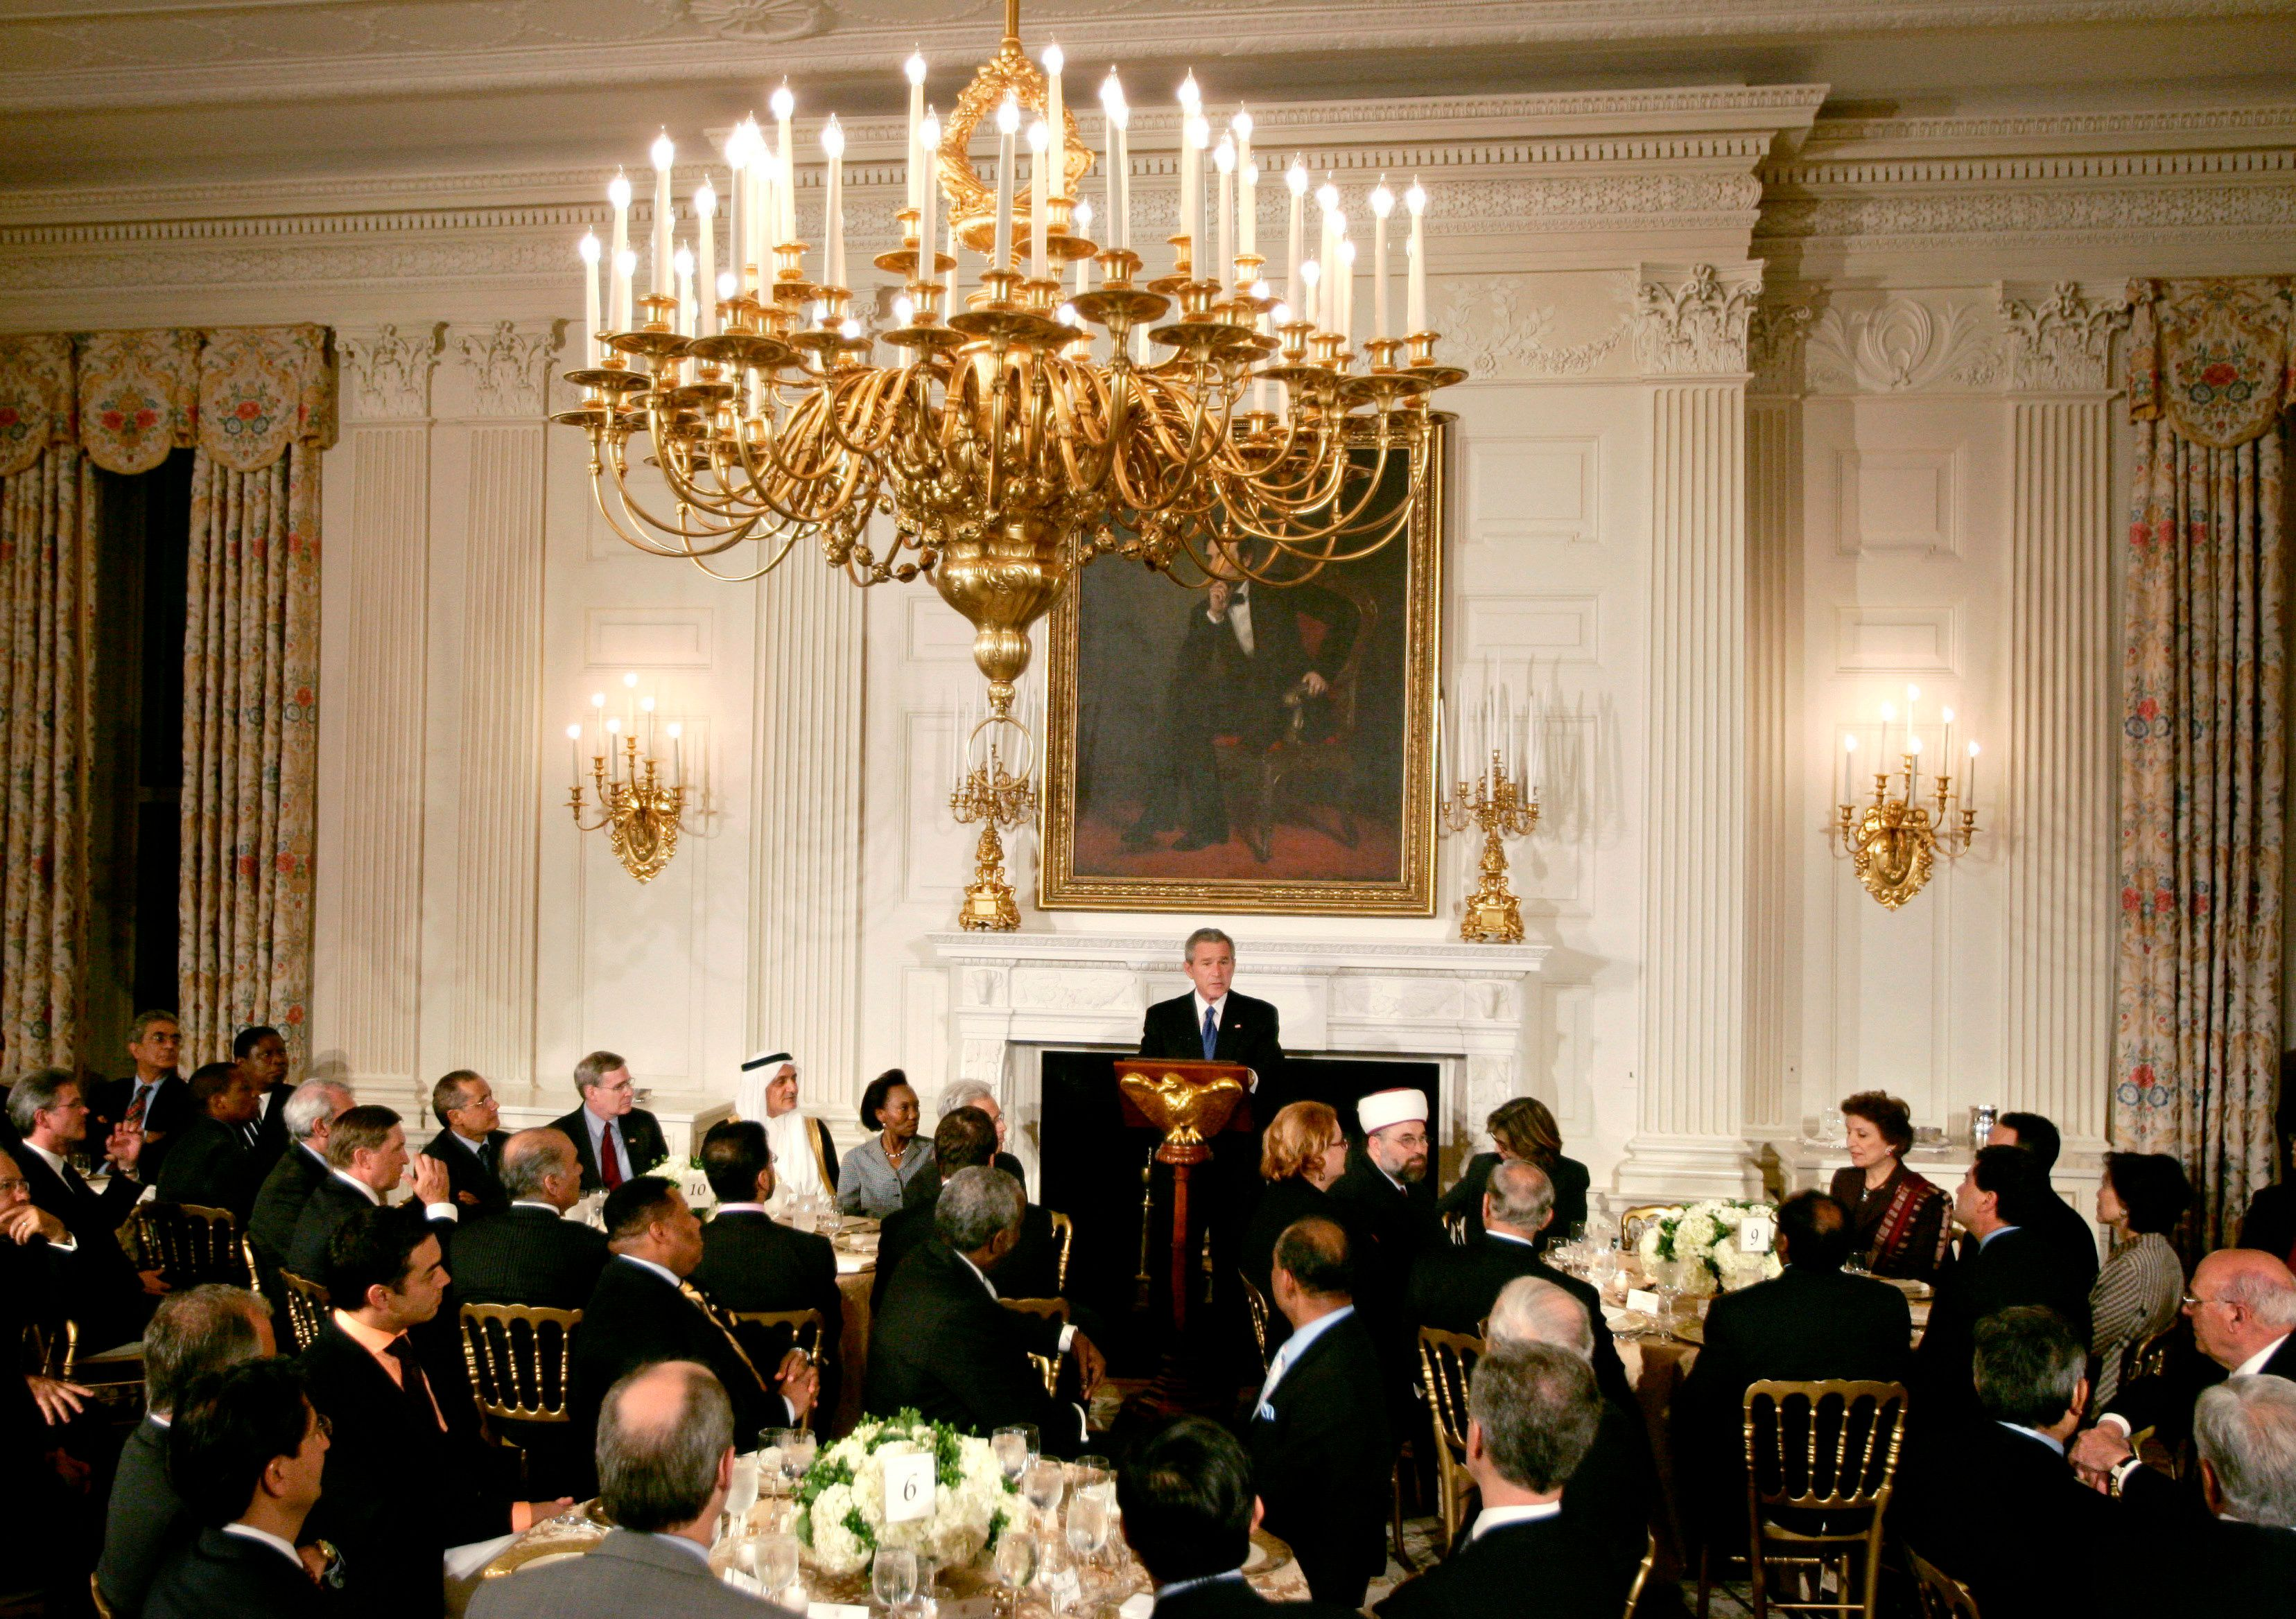 U.S. President Bush (C) makes remarks at an Iftar dinner with Ambassadors and Muslim leaders in the State Dining room of the White House in Washington October 17, 2005. REUTERS/Jason Reed